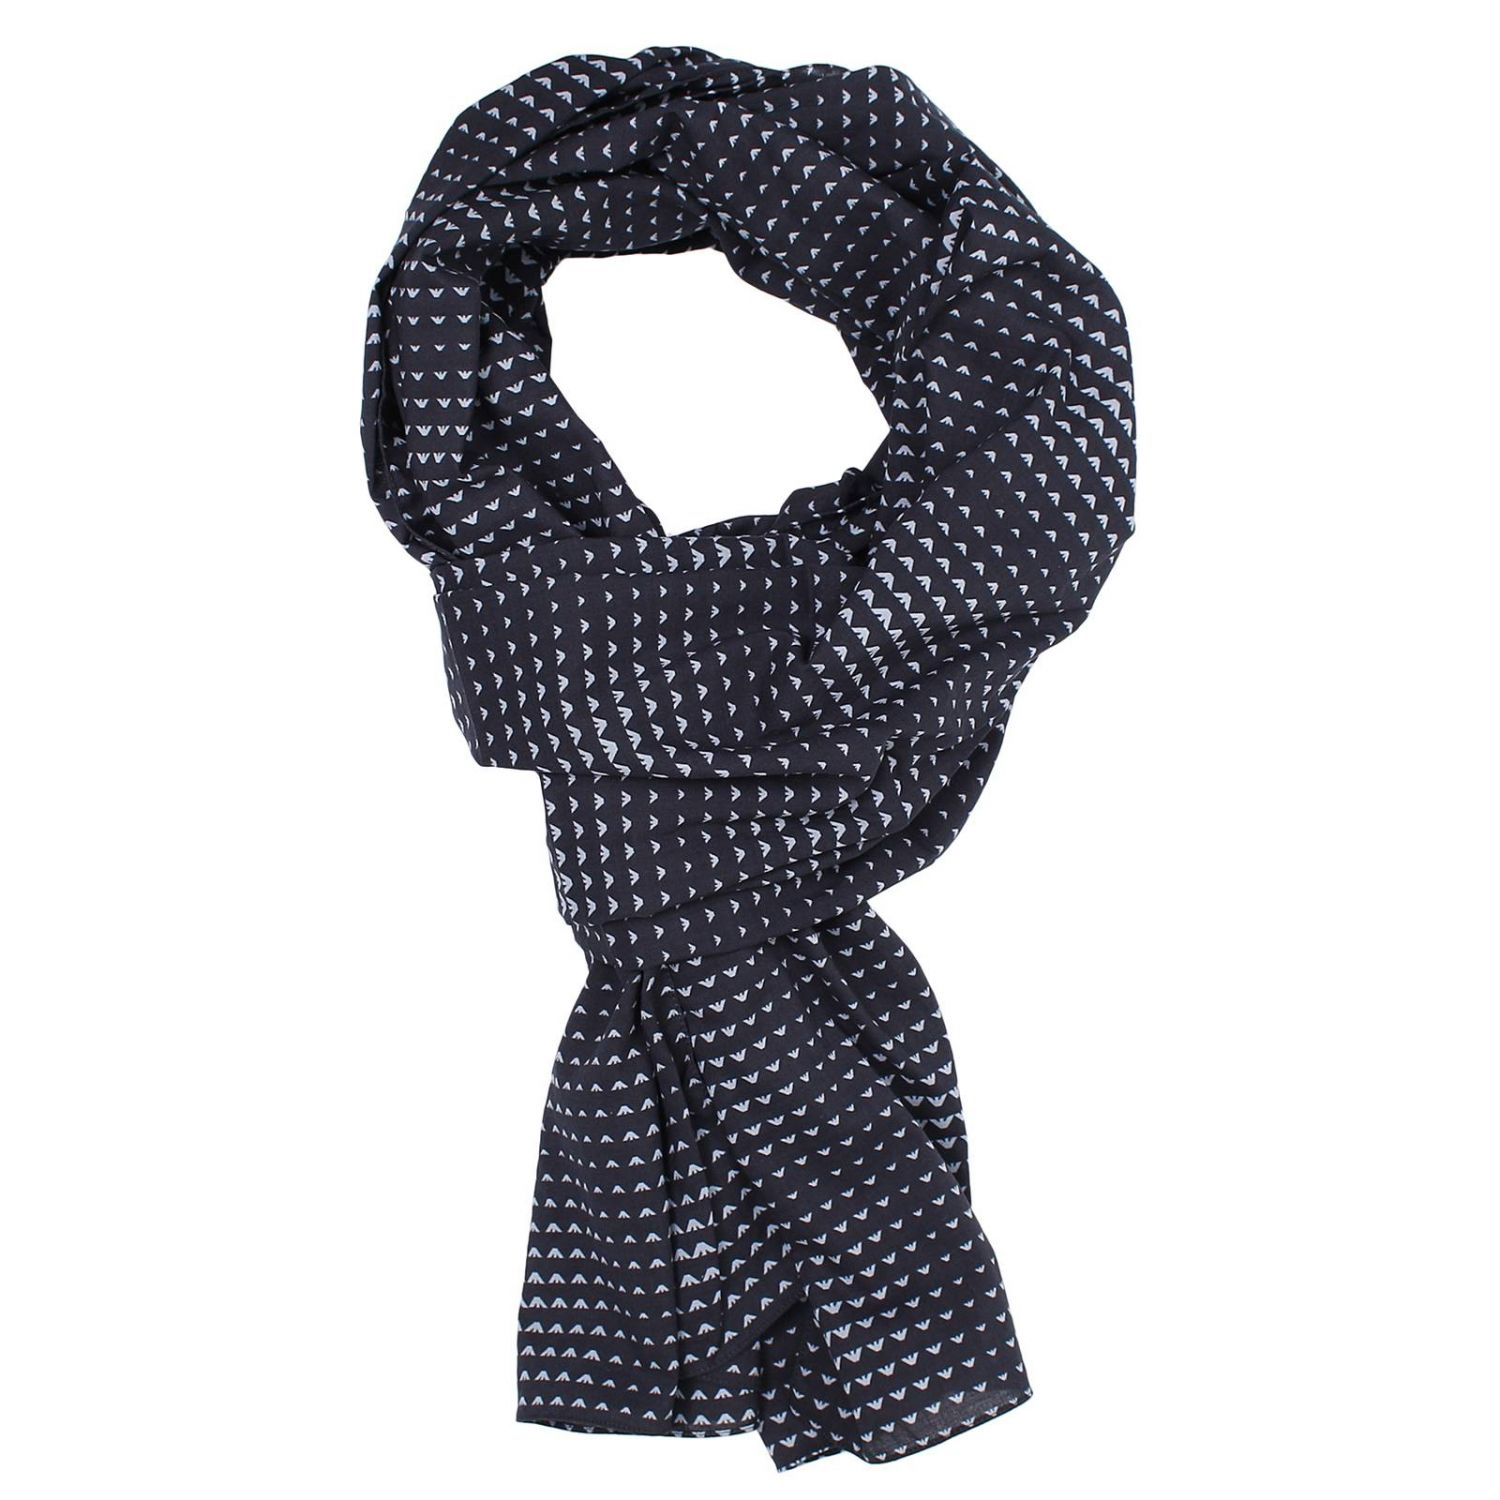 armani giorgio armani s scarf in black for